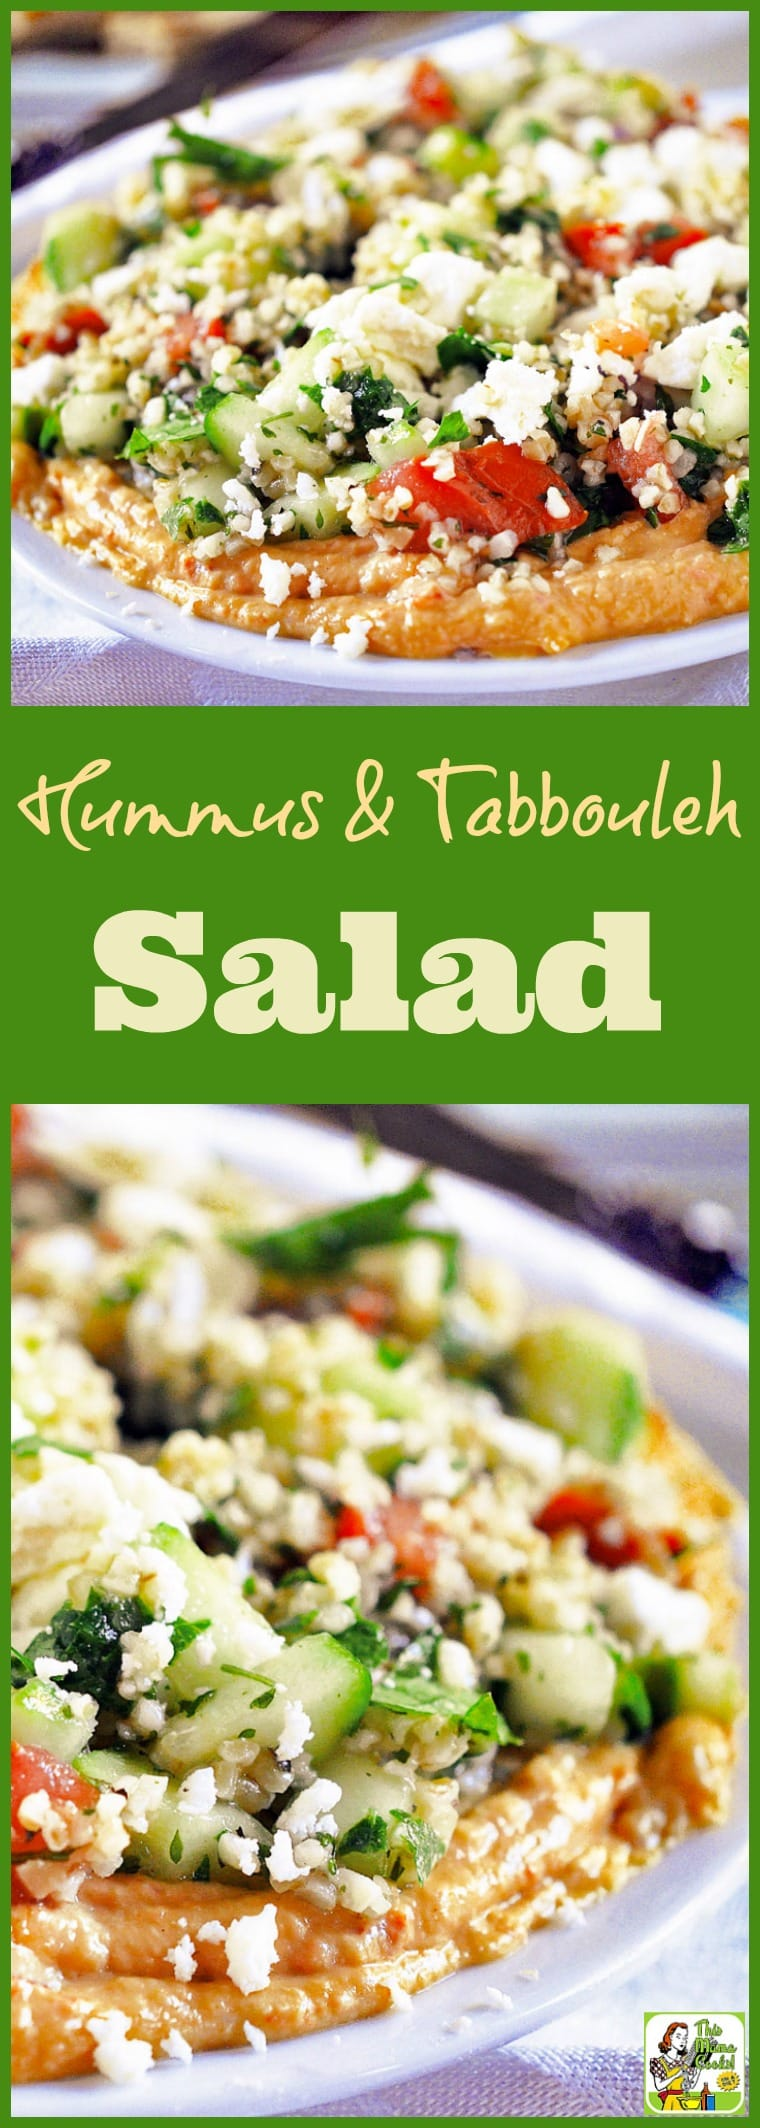 This Hummus & Tabbouleh Salad recipe can be used as a party appetizer or in a sandwich wrap. Comes with a gluten-free option using quinoa. Make this easy to make healthy hummus and feta cheese dip recipe for your next party! #partyfood #appetizers #appetizerseasy #recipes #easy #recipeoftheday #glutenfree #easyrecipe #easyrecipes #glutenfreerecipes #hummus #dip